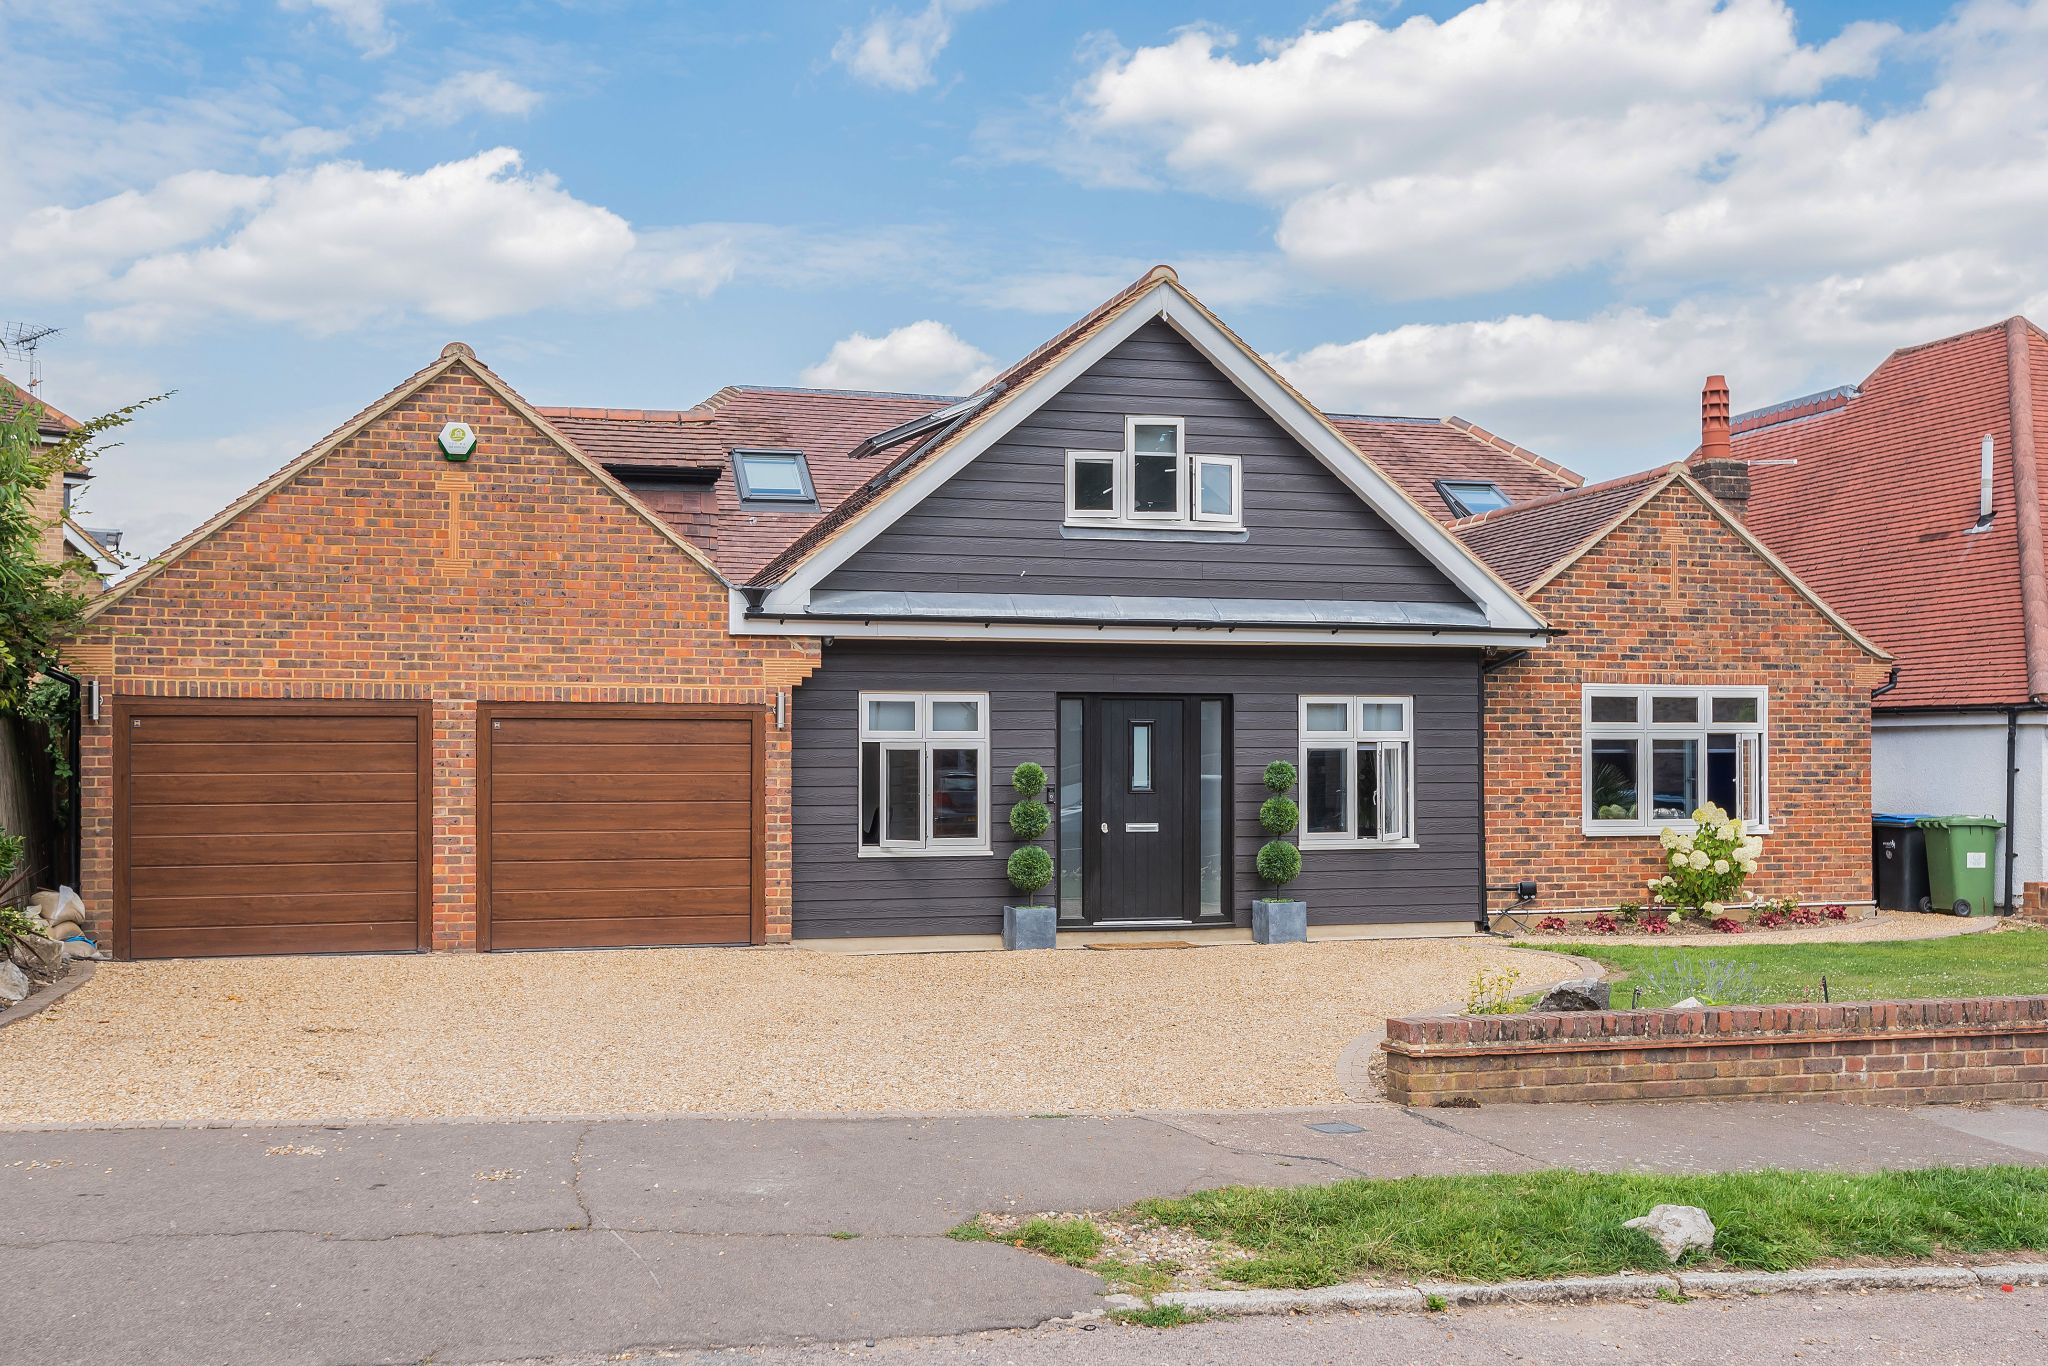 4 bedroom chalet house For Sale in Hadley Wood - Property photograph